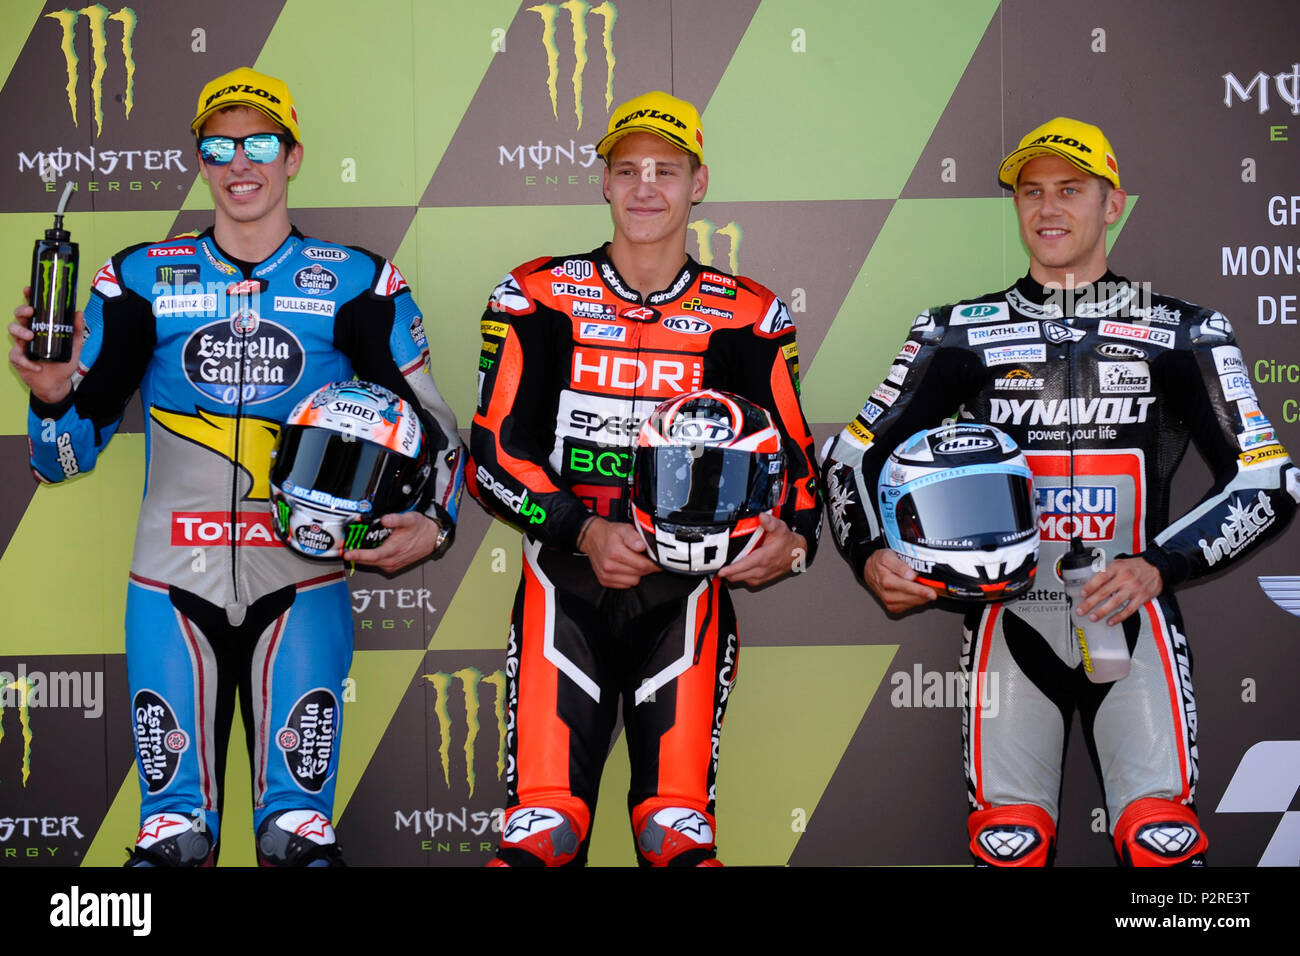 Montmelo, Spain. 16th Jun, 2018. Alex Marquez (73) of Spain and Eg 0,0 Marc VDS Kalex , Fabio Quartararo (20) of France and Mb Conveyors - Speed Up Racing Speed Up and Marcel Schrotter (23) of Germany and Dynavolt Intact GP Kalex during the qualifying of the Gran Premi Monster Energy de Catalunya, Circuit of Catalunya, Montmelo, Spain.On 16 june of 2018. Credit: CORDON PRESS/Alamy Live News - Stock Image